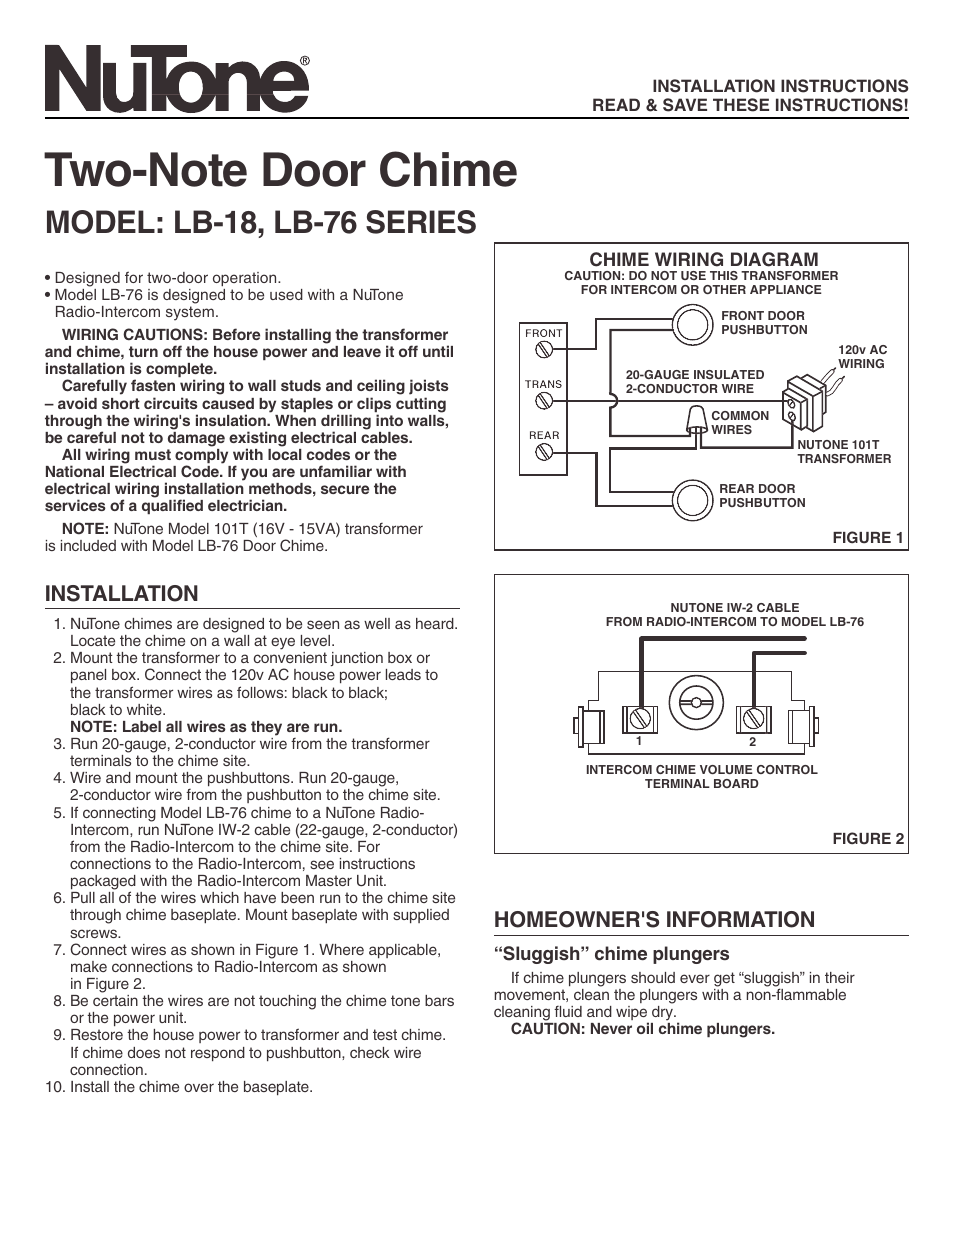 nutone two note door chime lb 76 page1 nutone two note door chime lb 76 user manual 2 pages also for nutone intercom wiring diagram at suagrazia.org